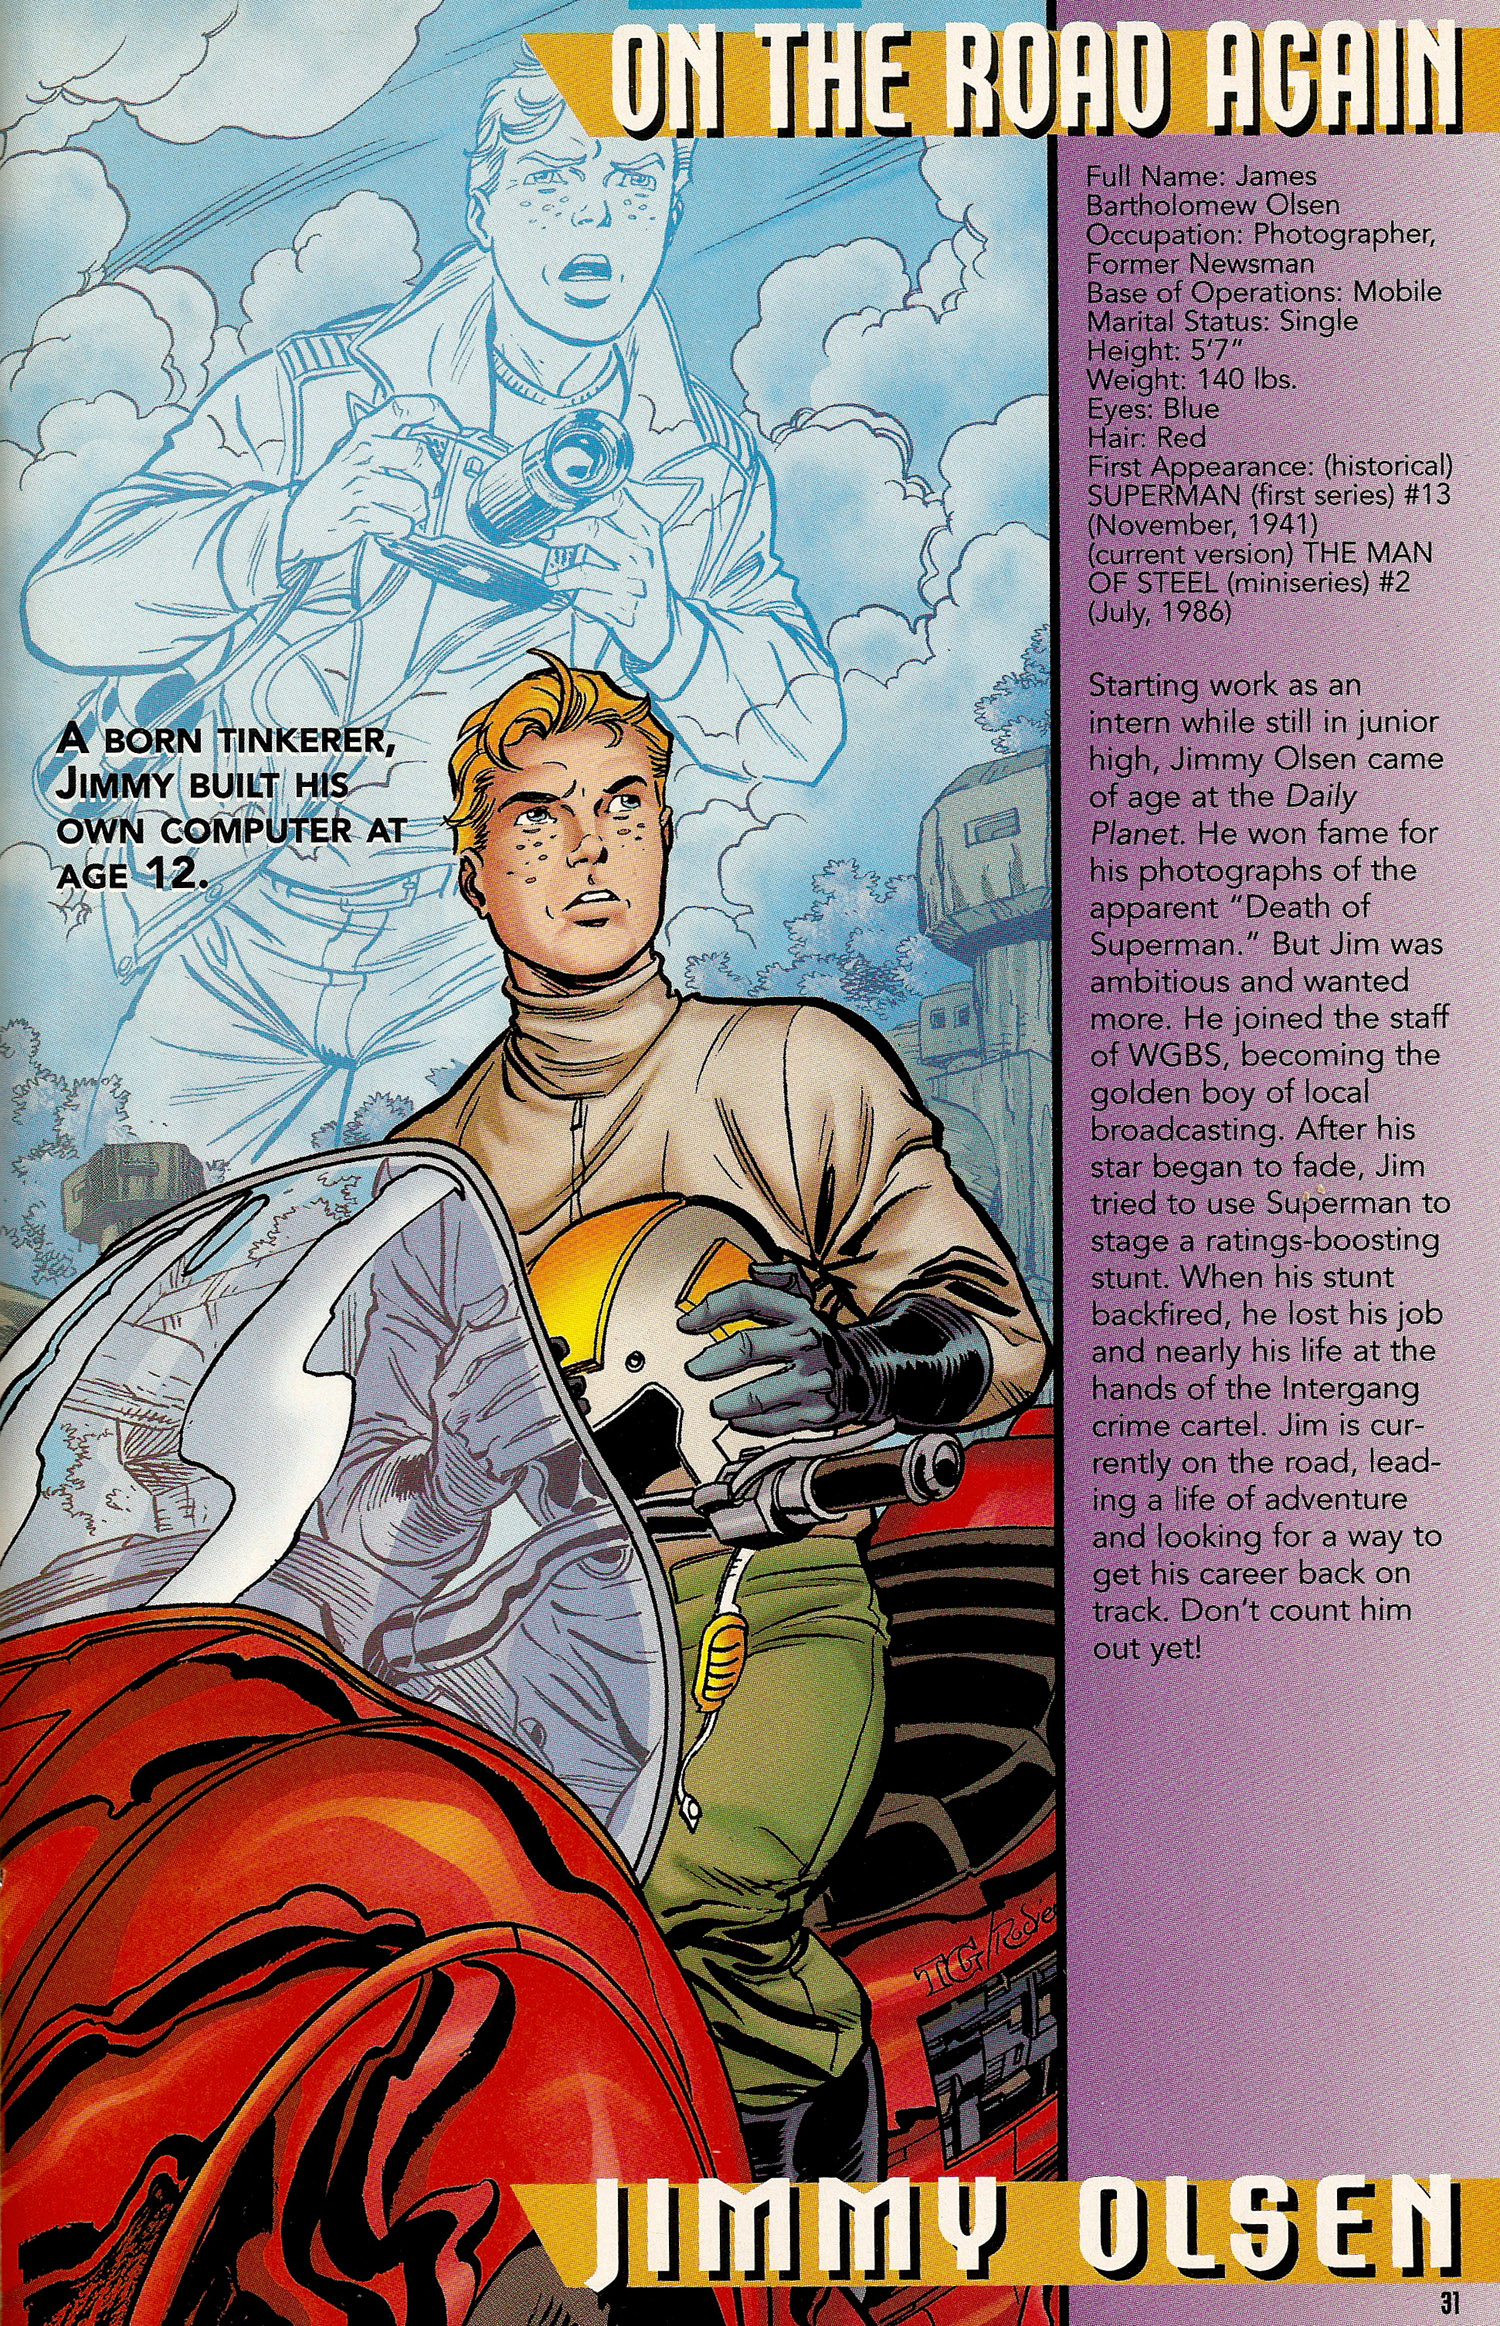 Secret Files 1998 - 04 Jimmy Olsen